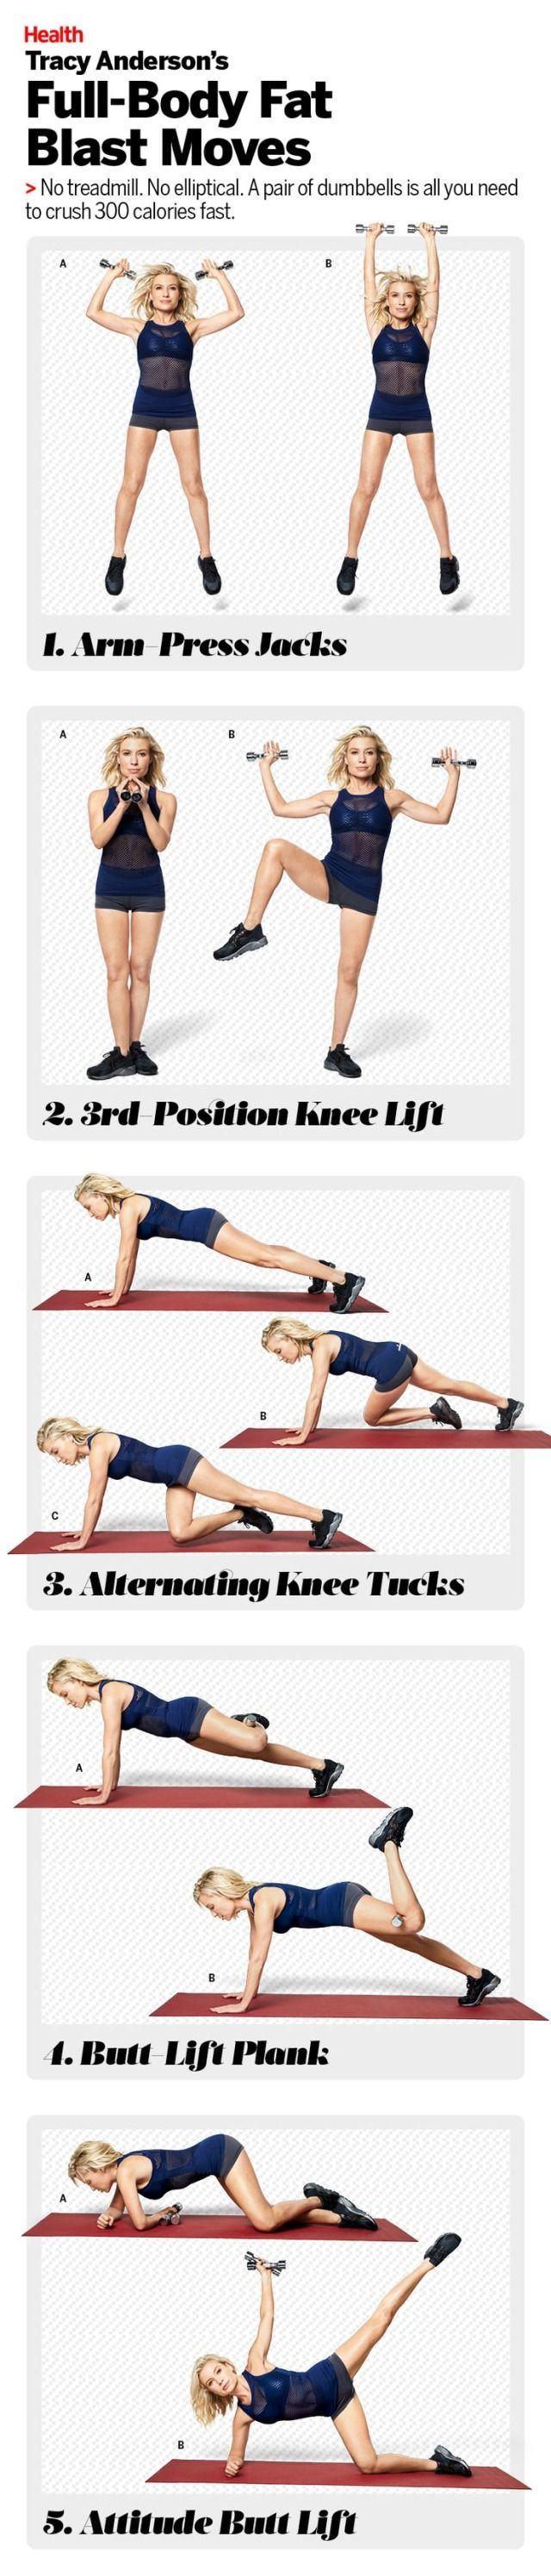 The full-body fat blast workout with Tracy Anderson: Burn more fat and crush 300 calories quickly with these challenging, fast-paced moves | Health.com #HEALTHxTA